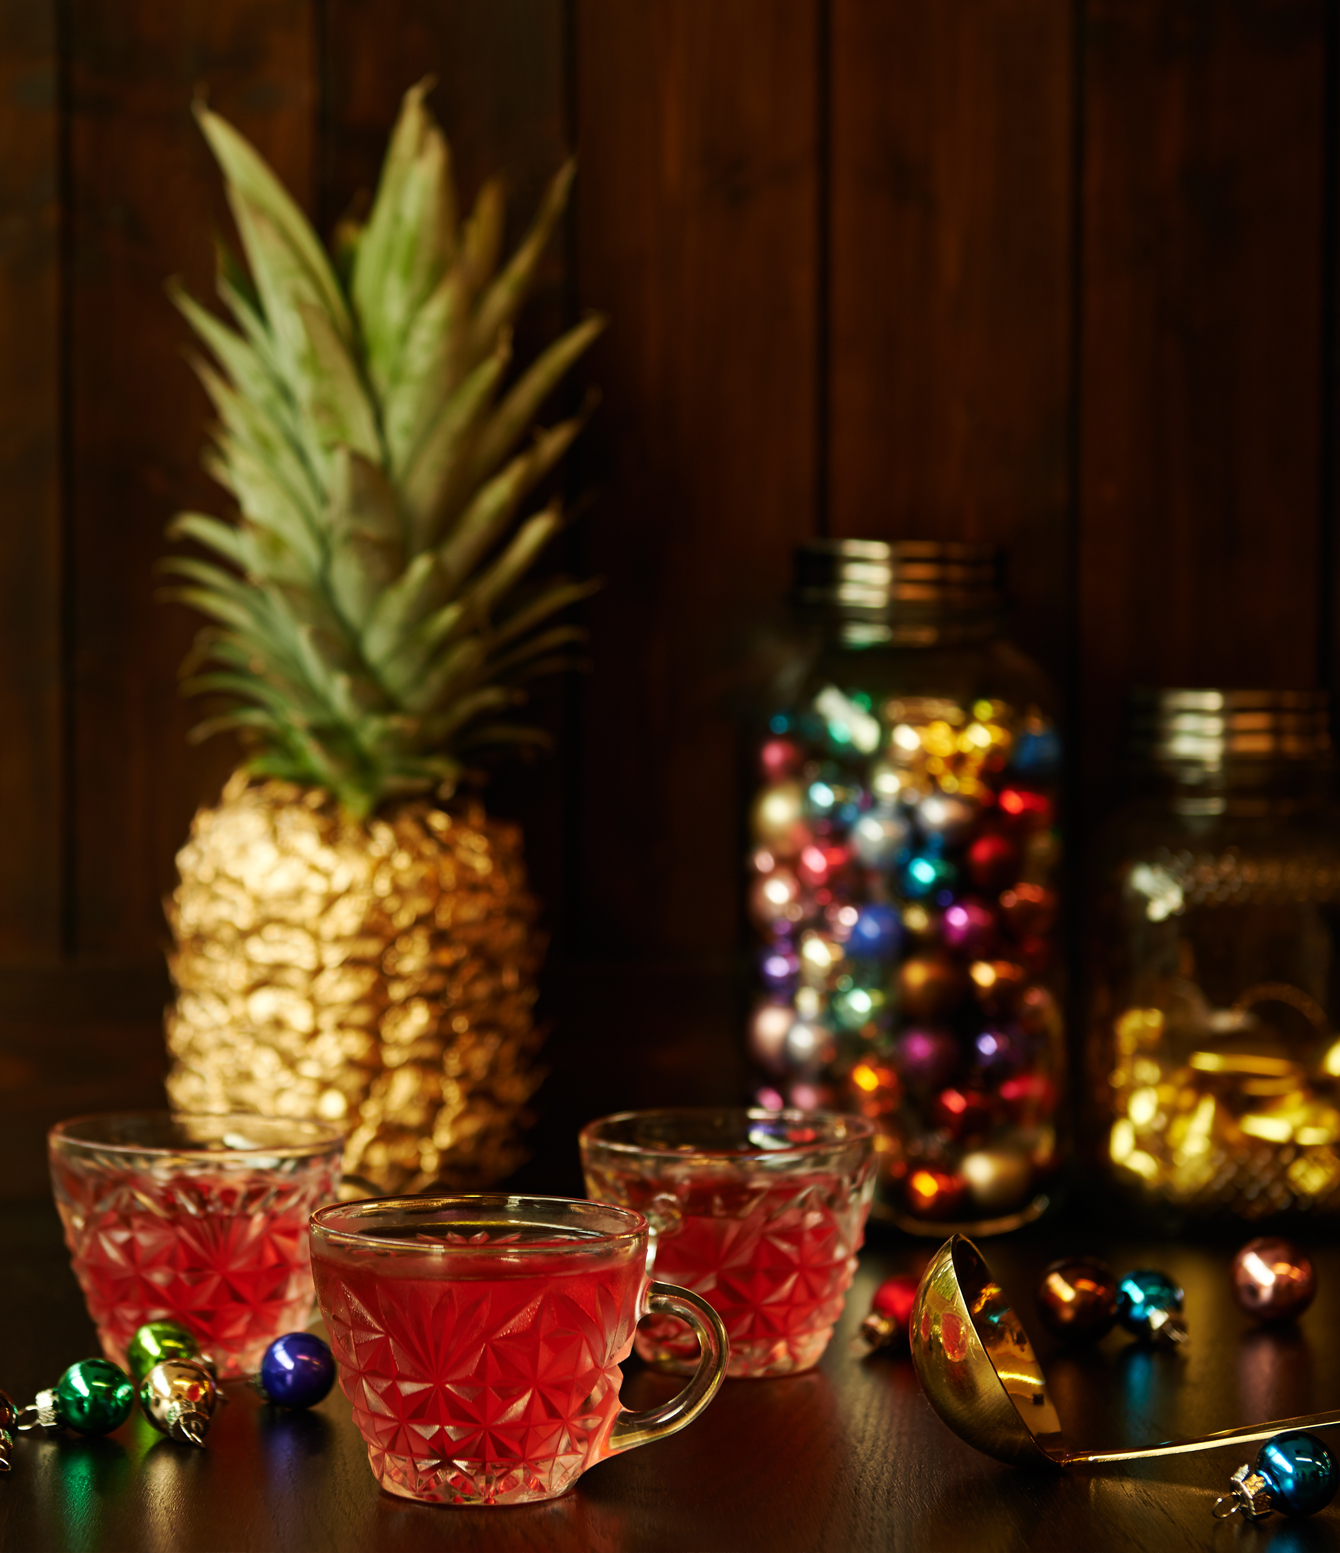 Christmas drinks photography of rum punch